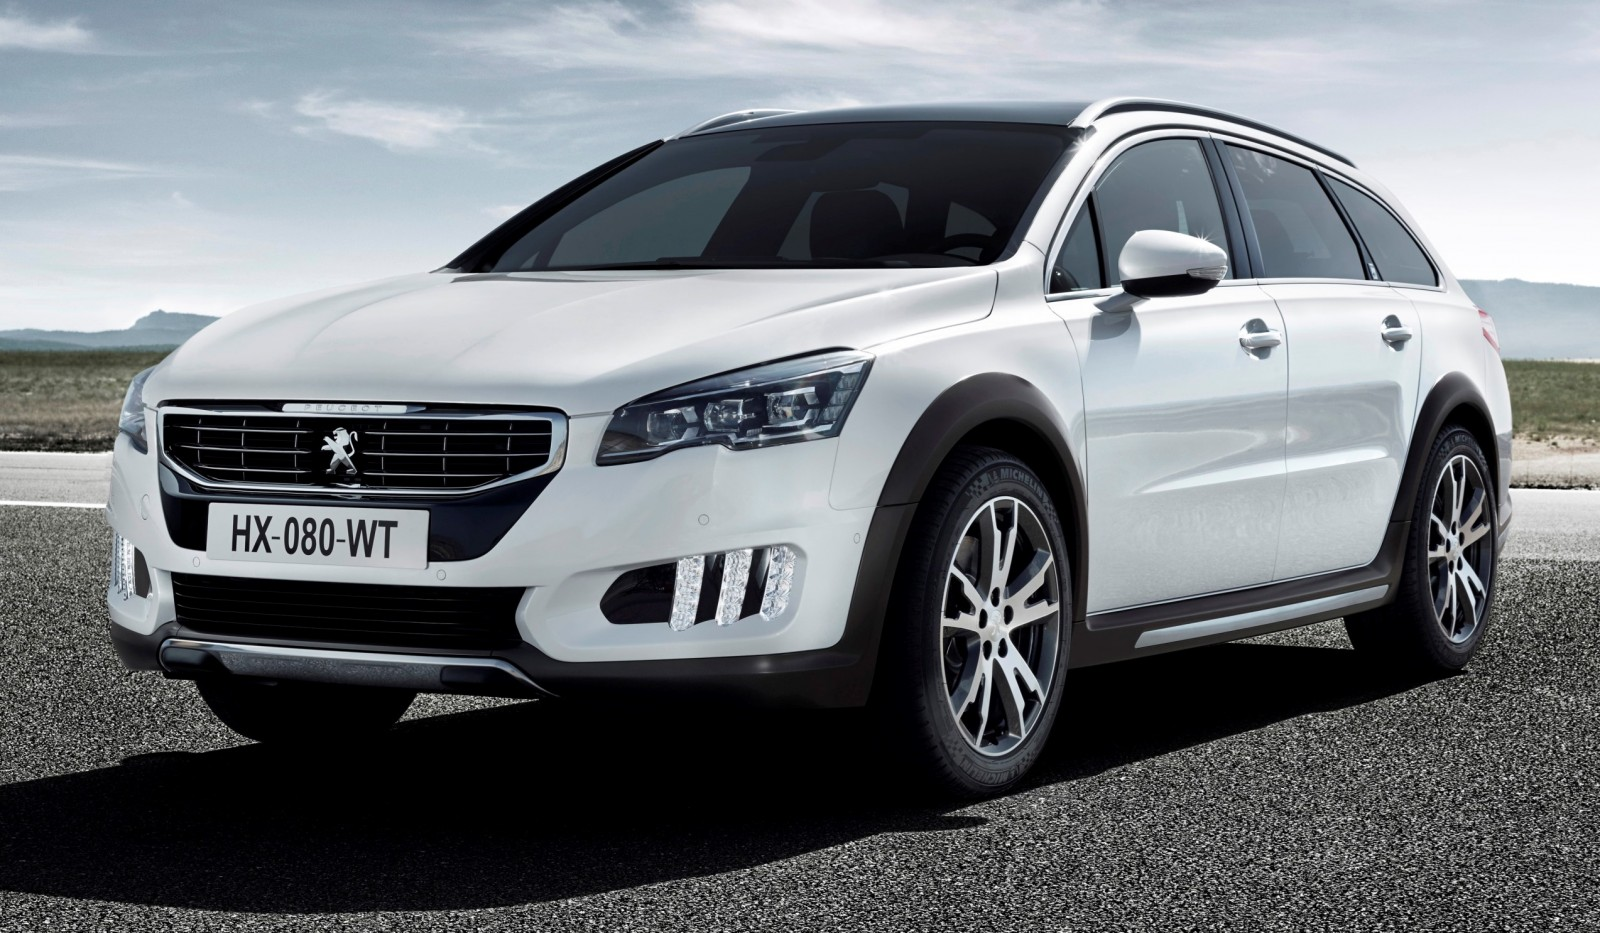 Update2 New Photos - 2015 Peugeot 508 Facelifted With New LED DRLs, Box-Design Beams and Tweaked Cabin Tech 18